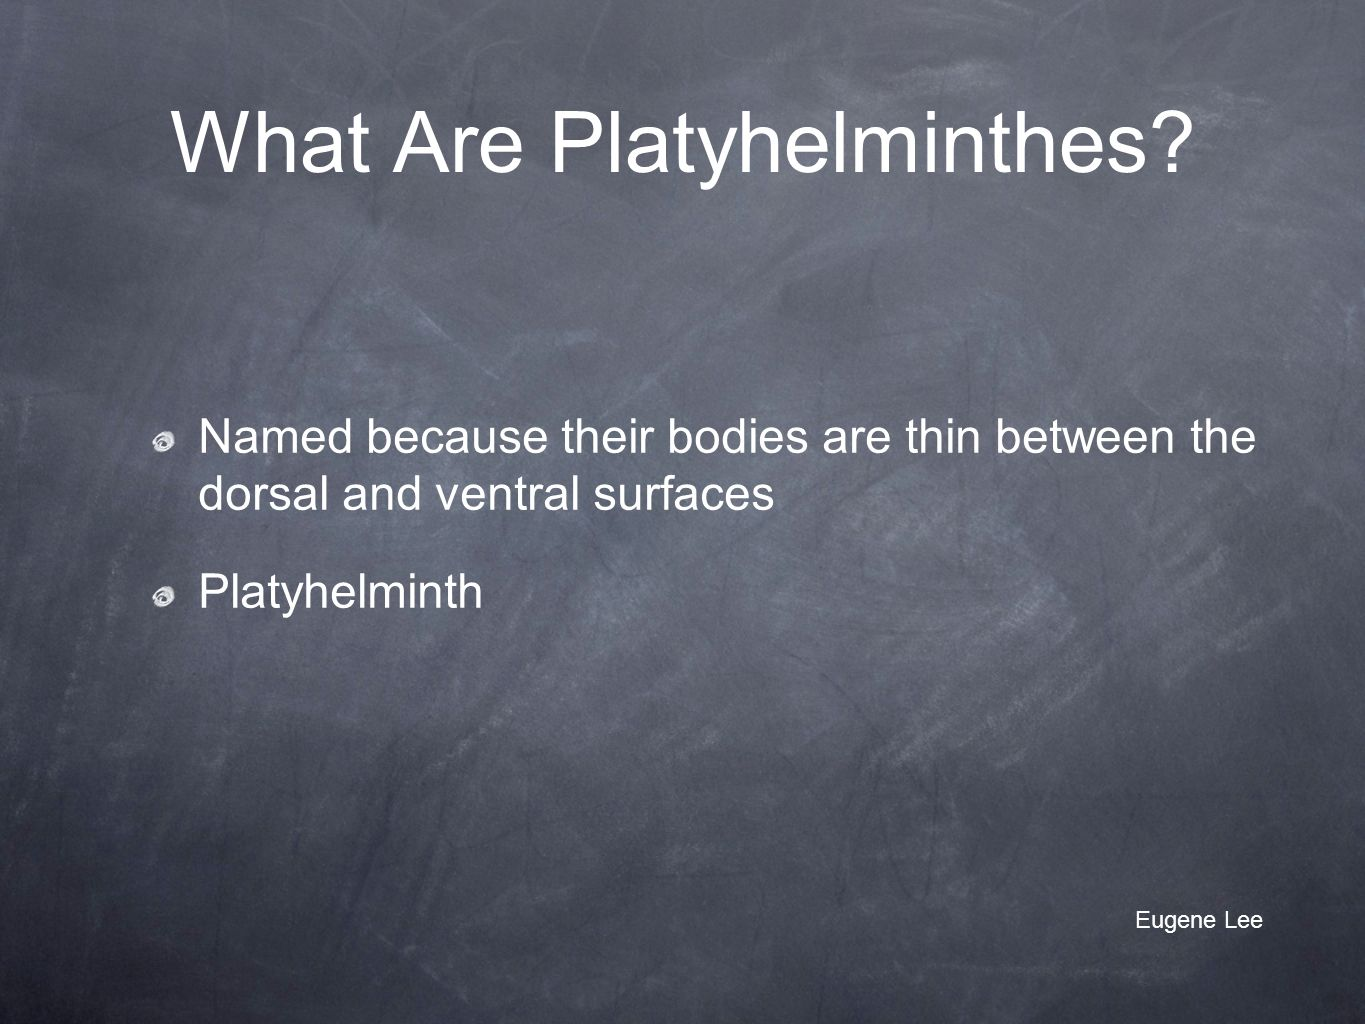 What Are Platyhelminthes